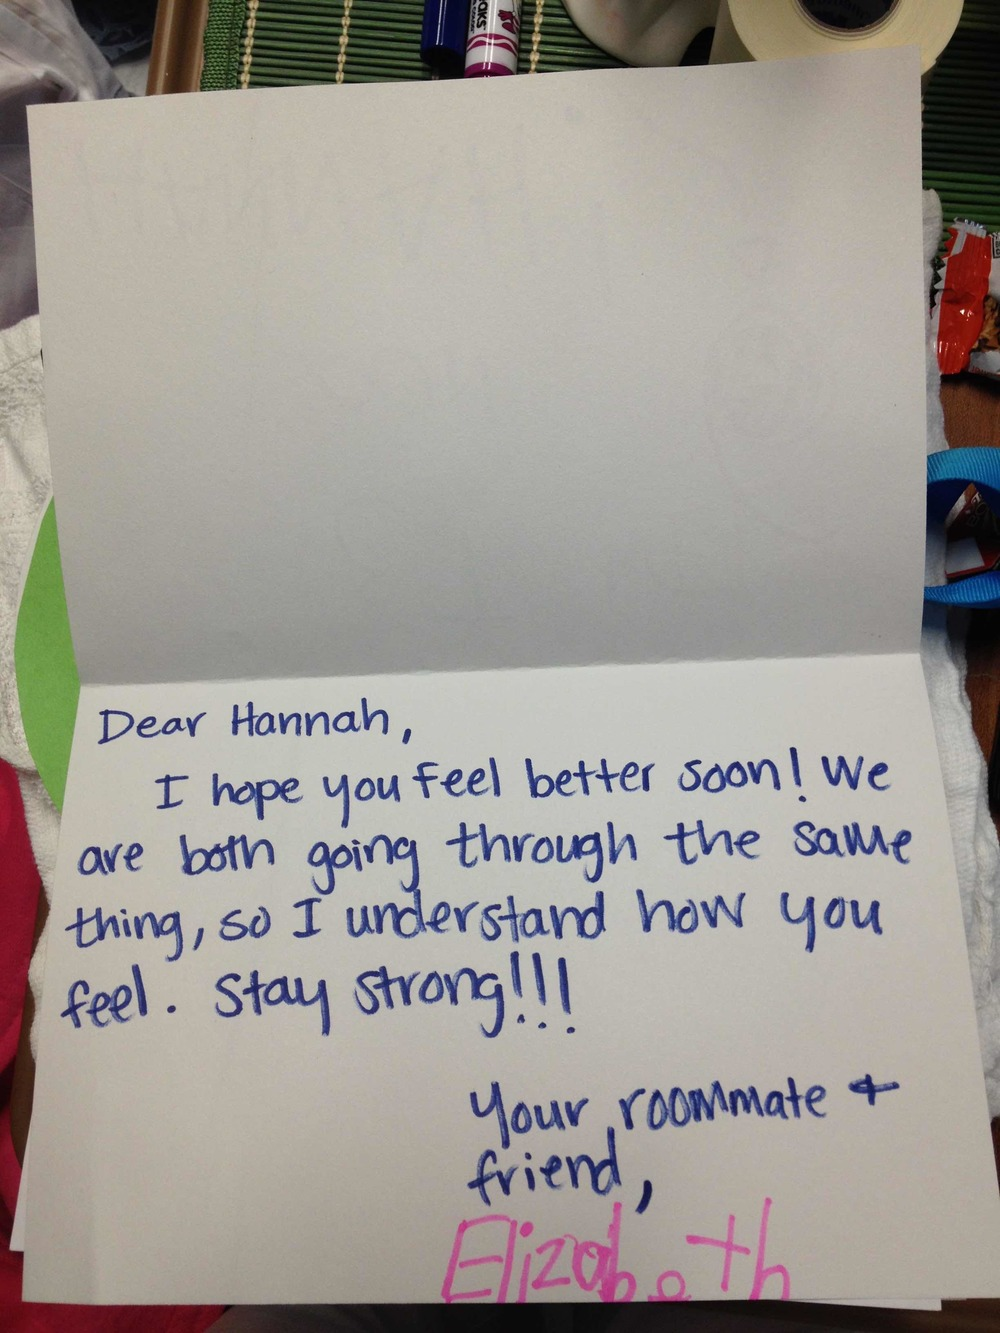 Get well card for her roommate